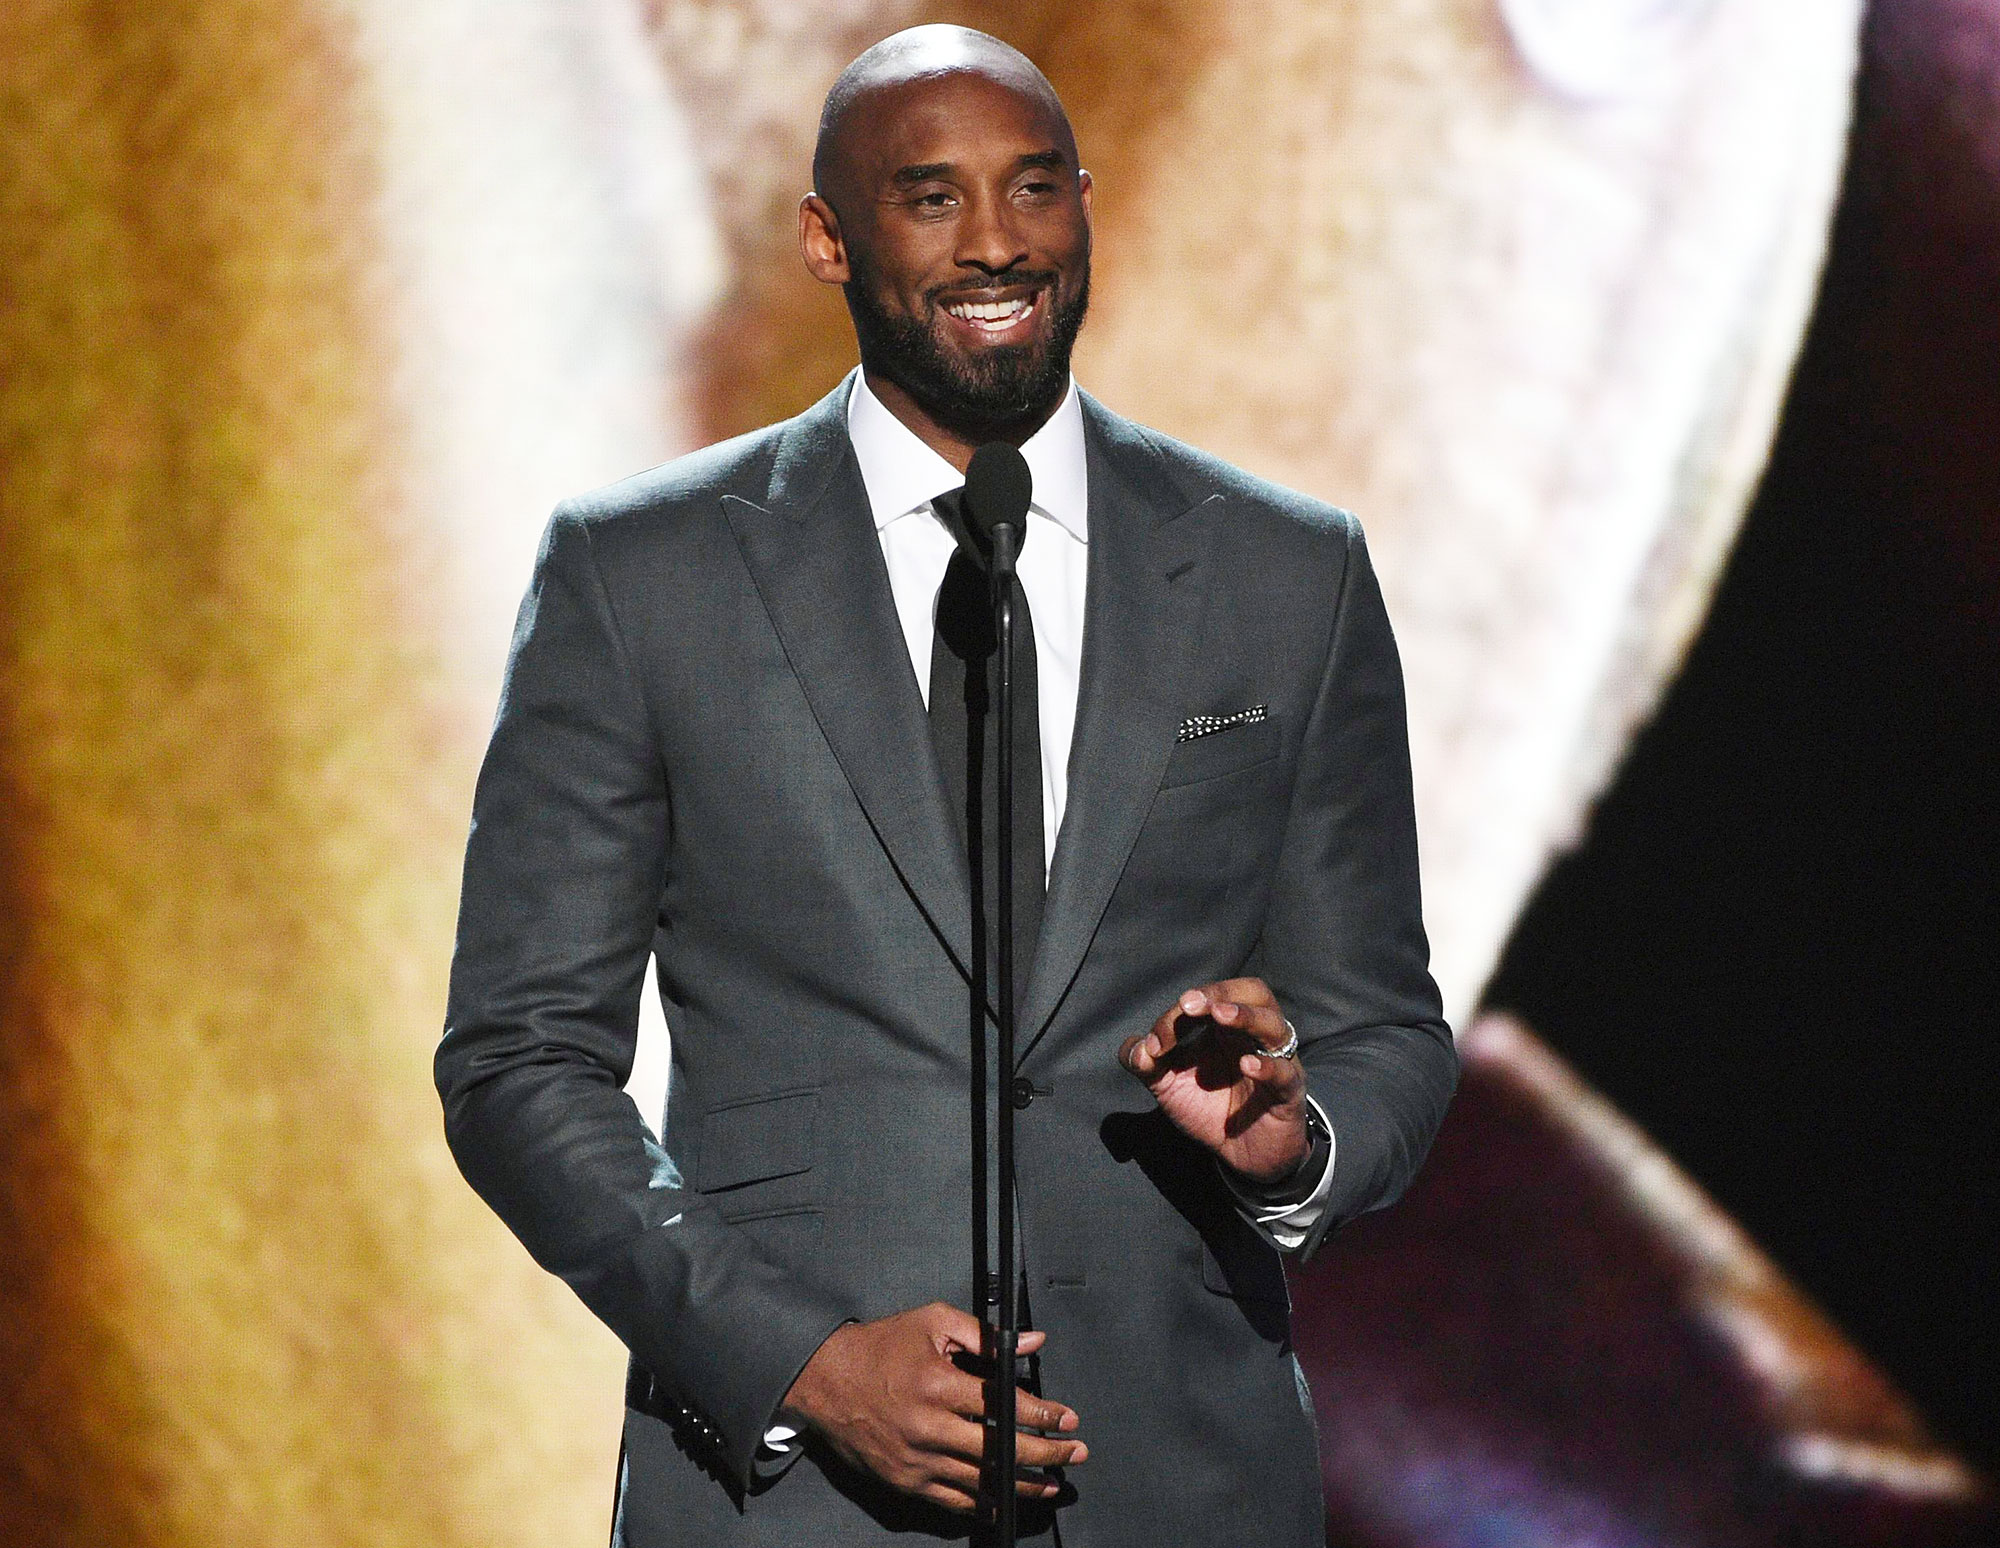 Kobe Bryant presents the Arthur Ashe award for courage at the ESPY Awards Ice Cube Remembers How Kobe Bryant Wanted to Be Even Better Than His Given Talents